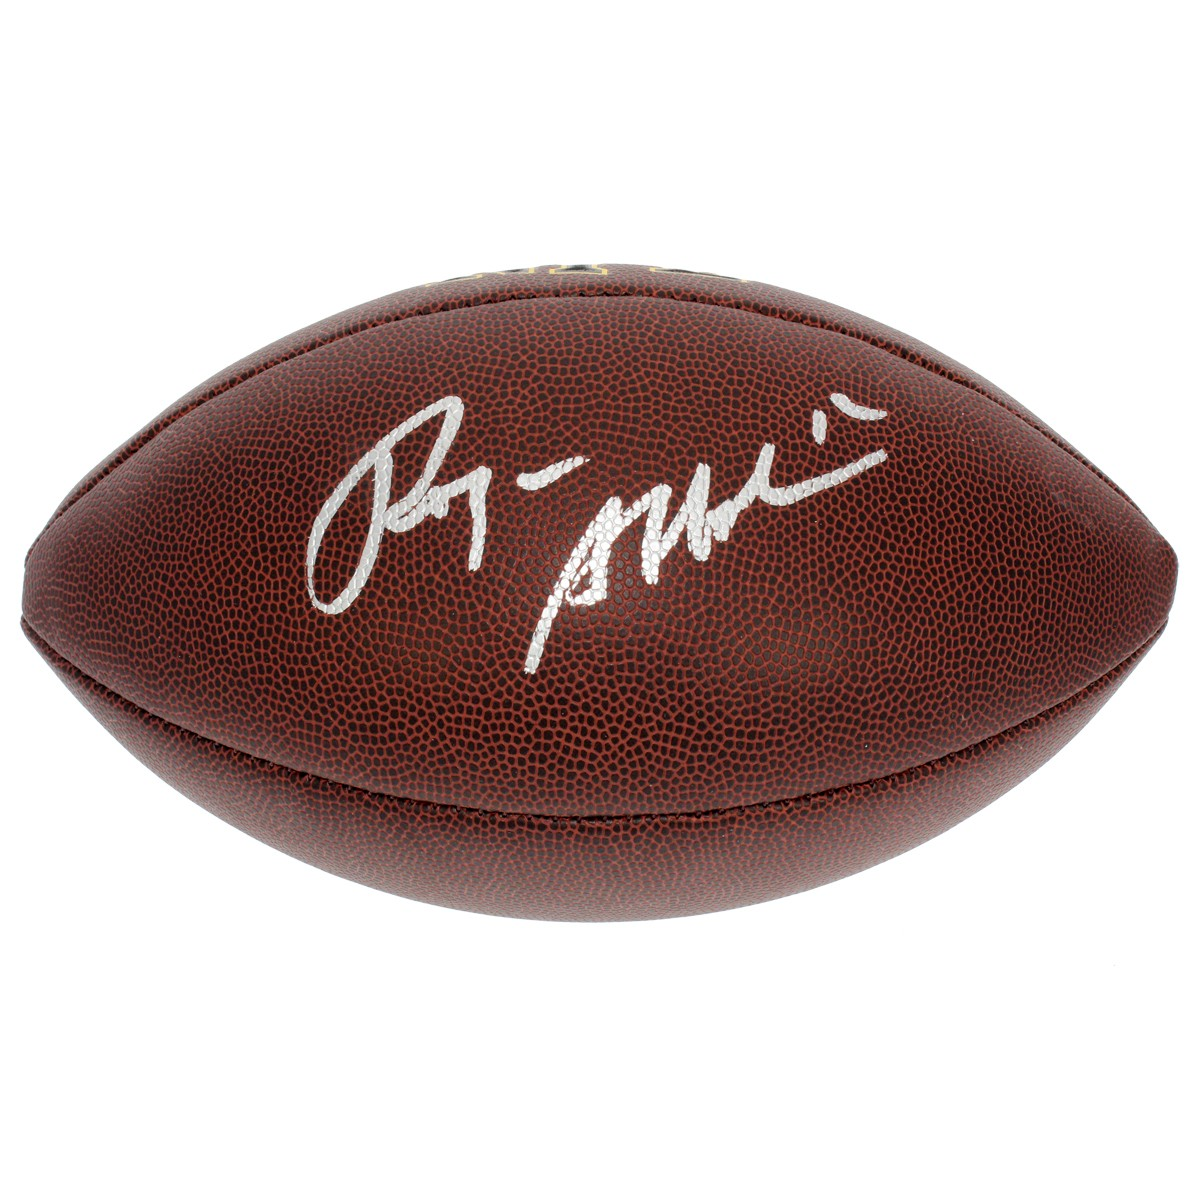 23bd4f823 Roger Staubach Dallas Cowboys Autographed Signed NFL Supergrip Football -  PSA DNA Certified Authentic